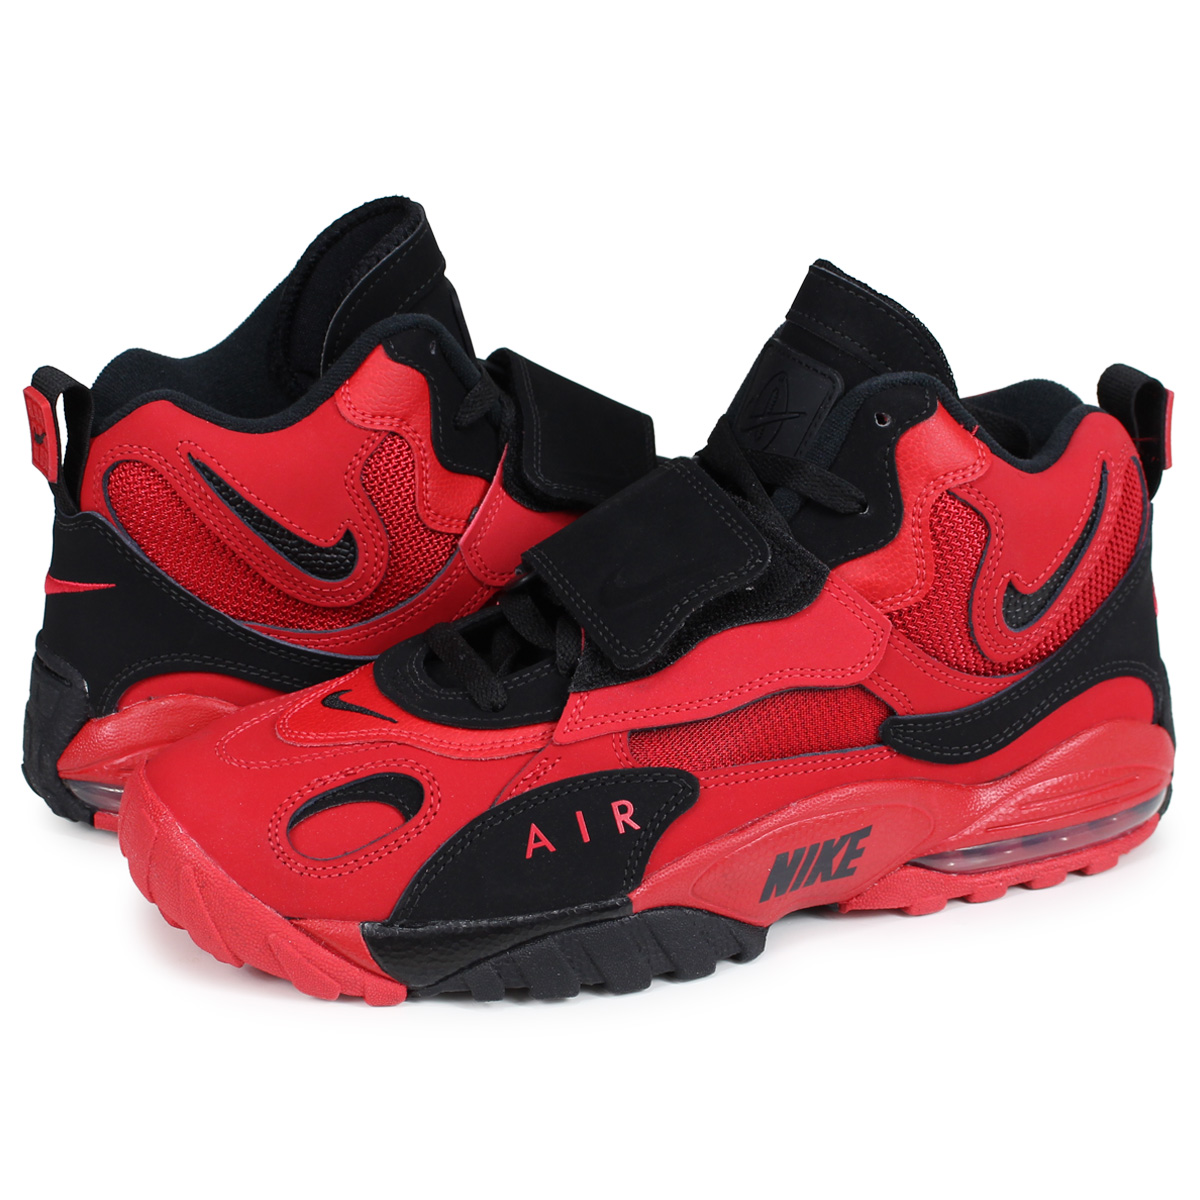 newest 5503e 01f7c Nike NIKE Air Max sneakers men AIR MAX SPEED TURF red AV7895-600 ...